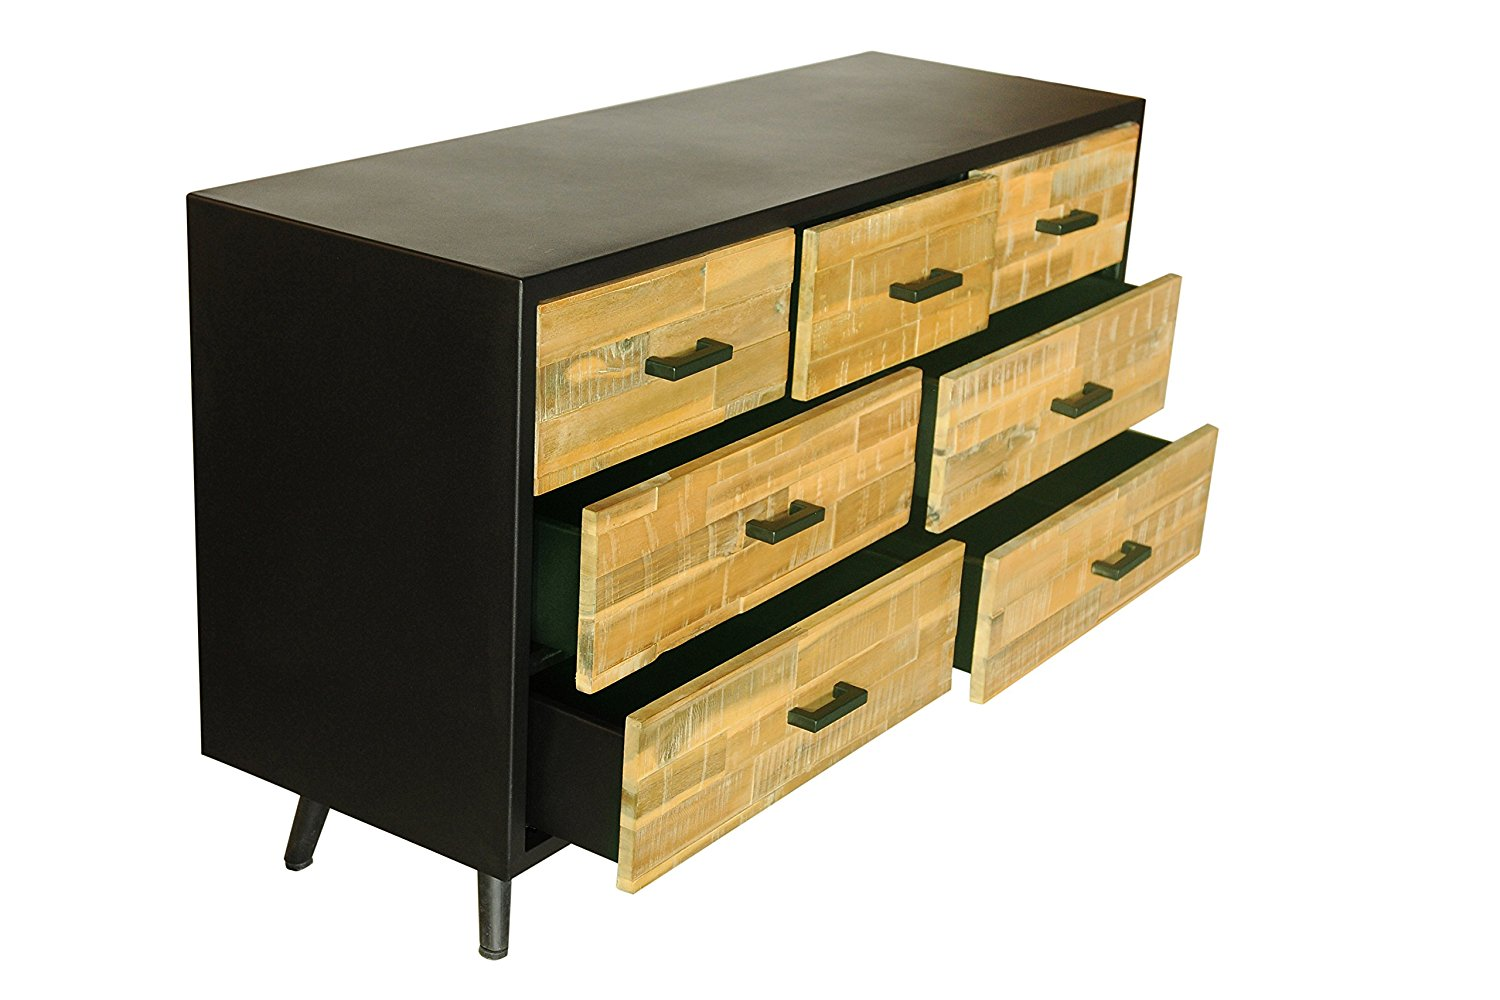 wood bowman of acacia cheap image dresser dressers